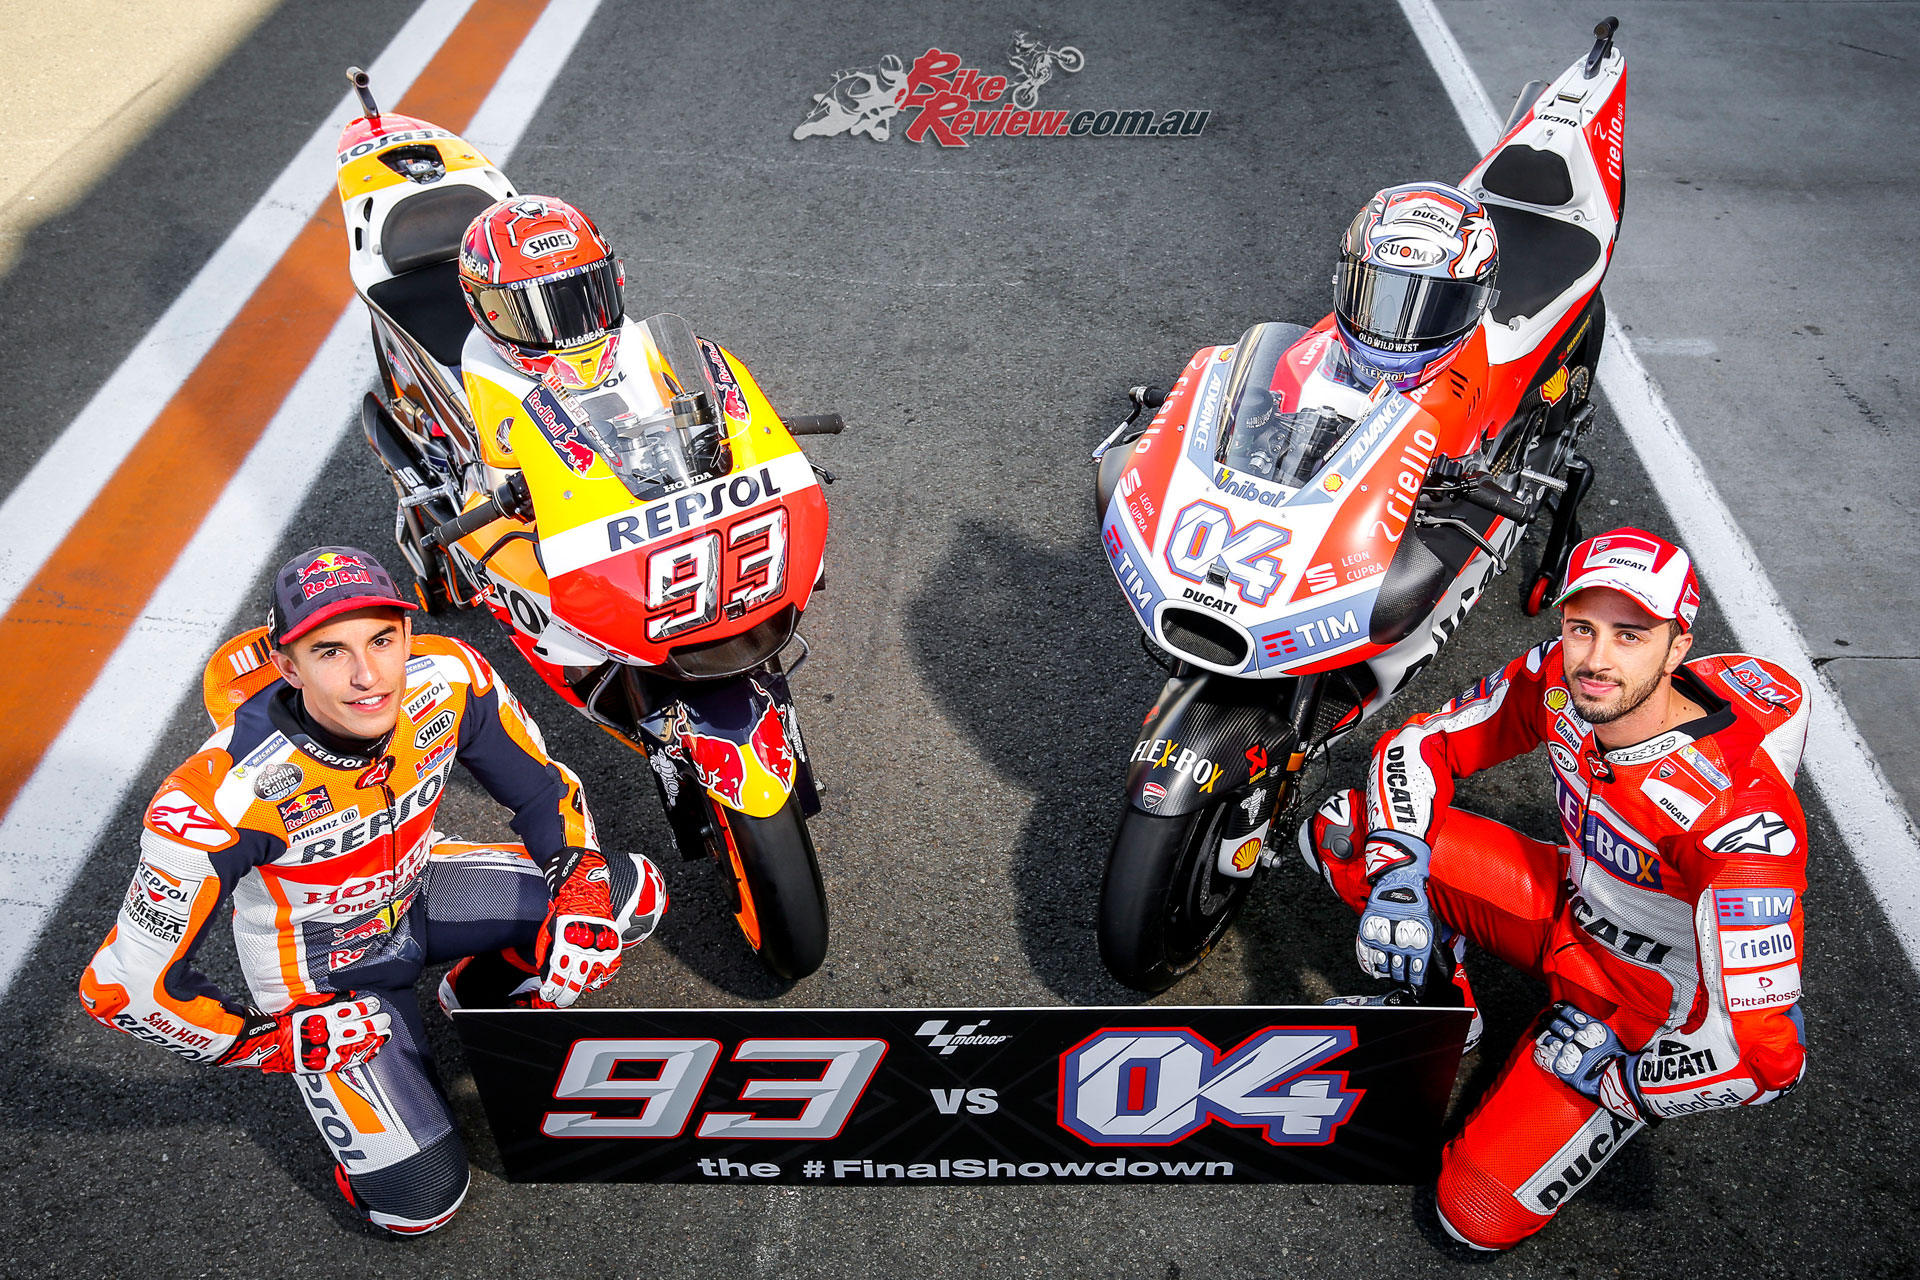 motogp showdown heads to valencia bike review. Black Bedroom Furniture Sets. Home Design Ideas